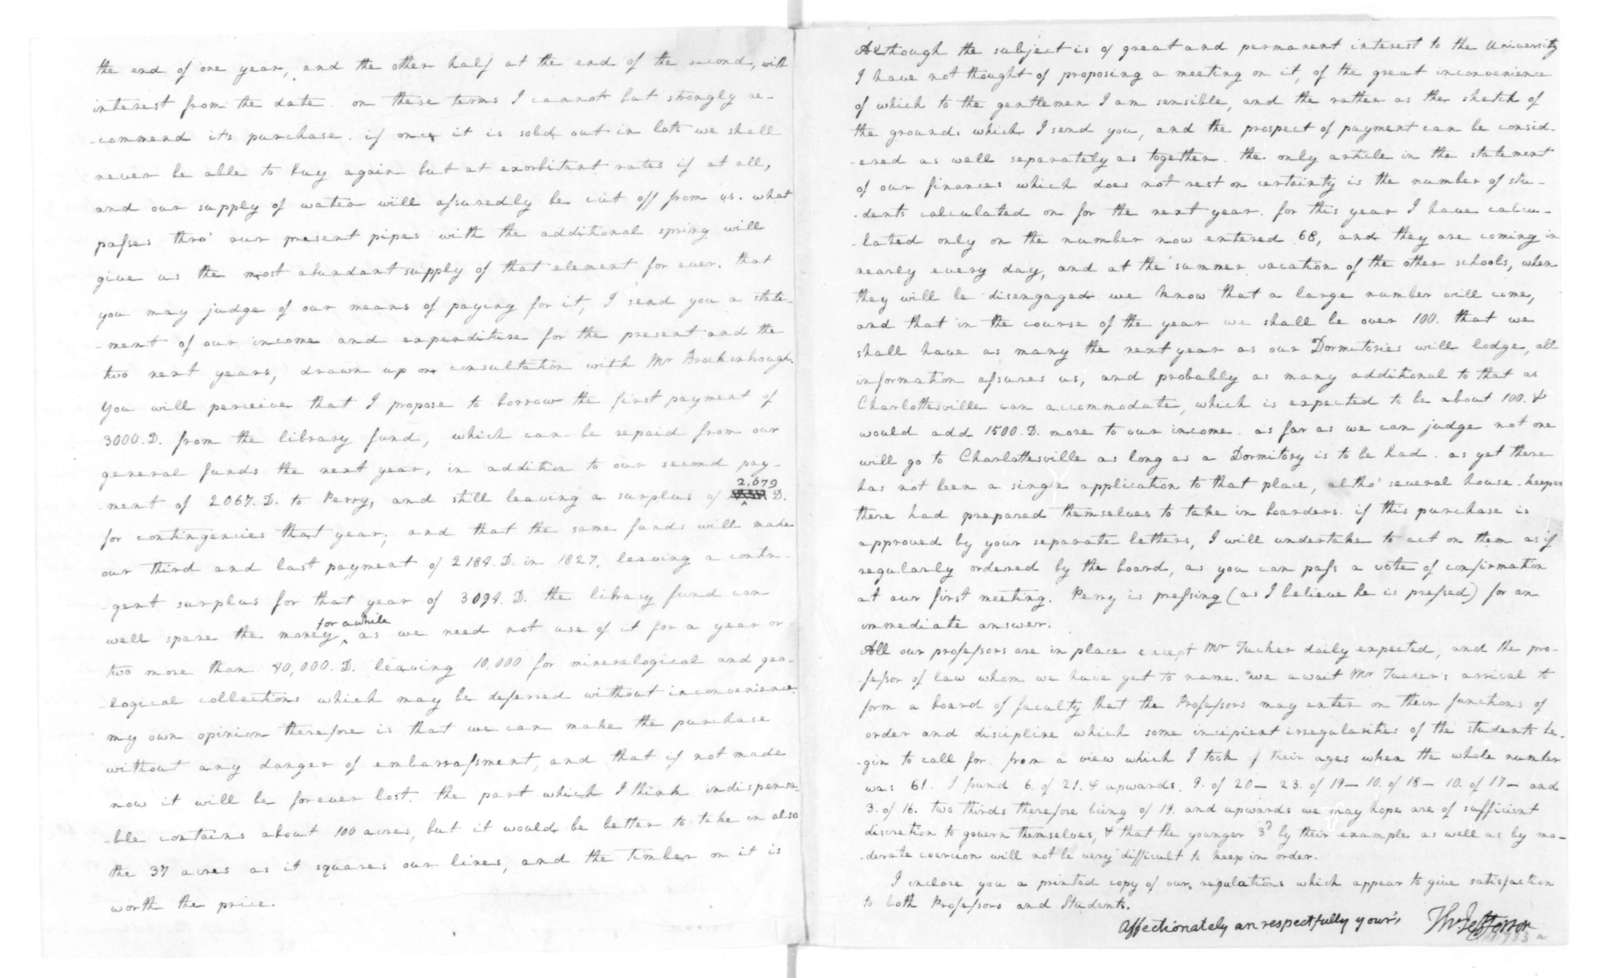 Thomas Jefferson to James Madison, April 15, 1825. Includes sketch and estimate of expenses for University of Virginia.